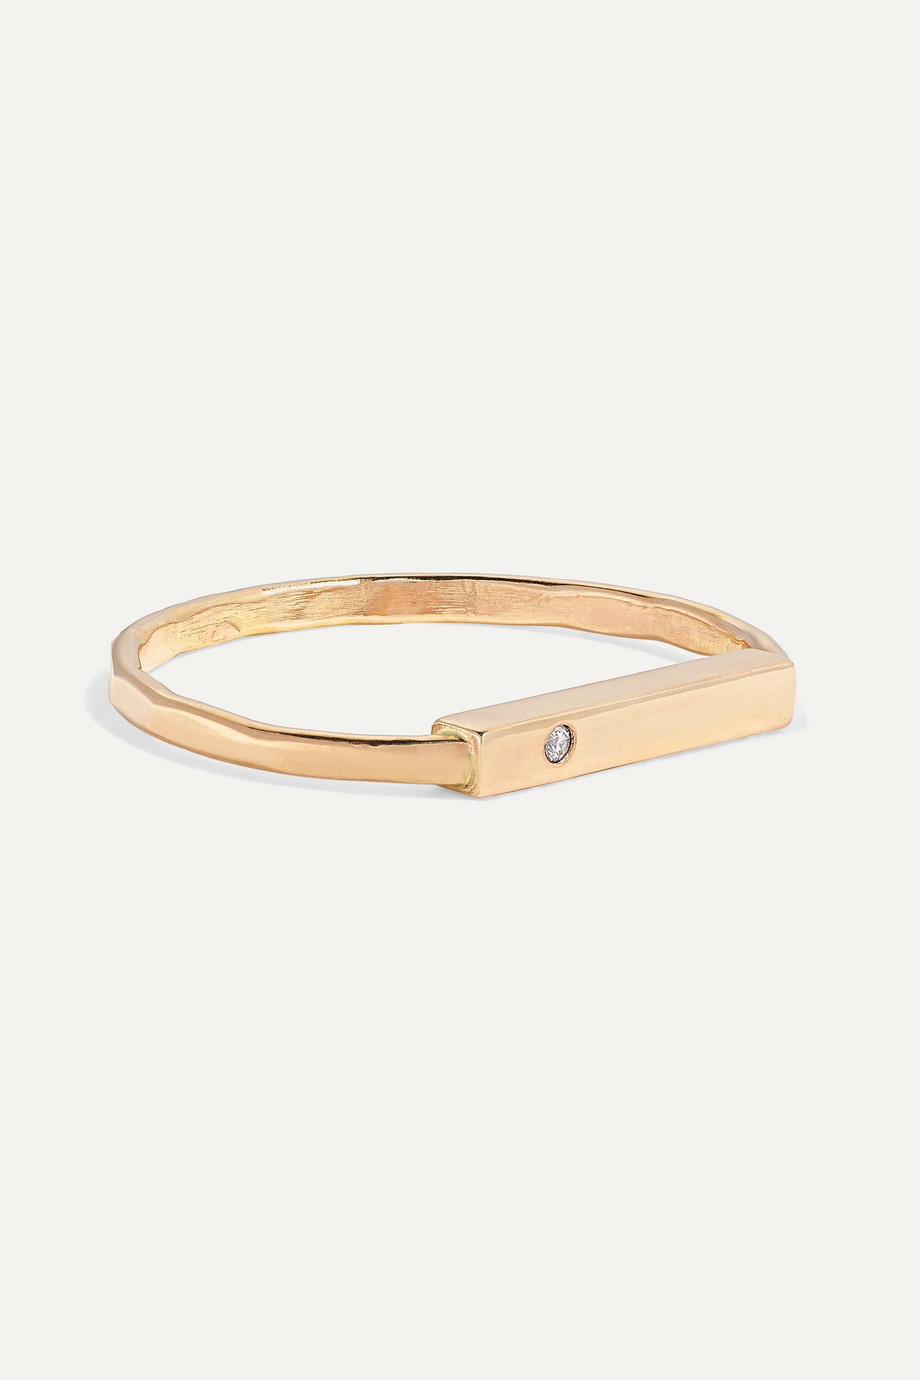 Melissa Joy Manning + NET SUSTAIN 14-karat gold diamond ring